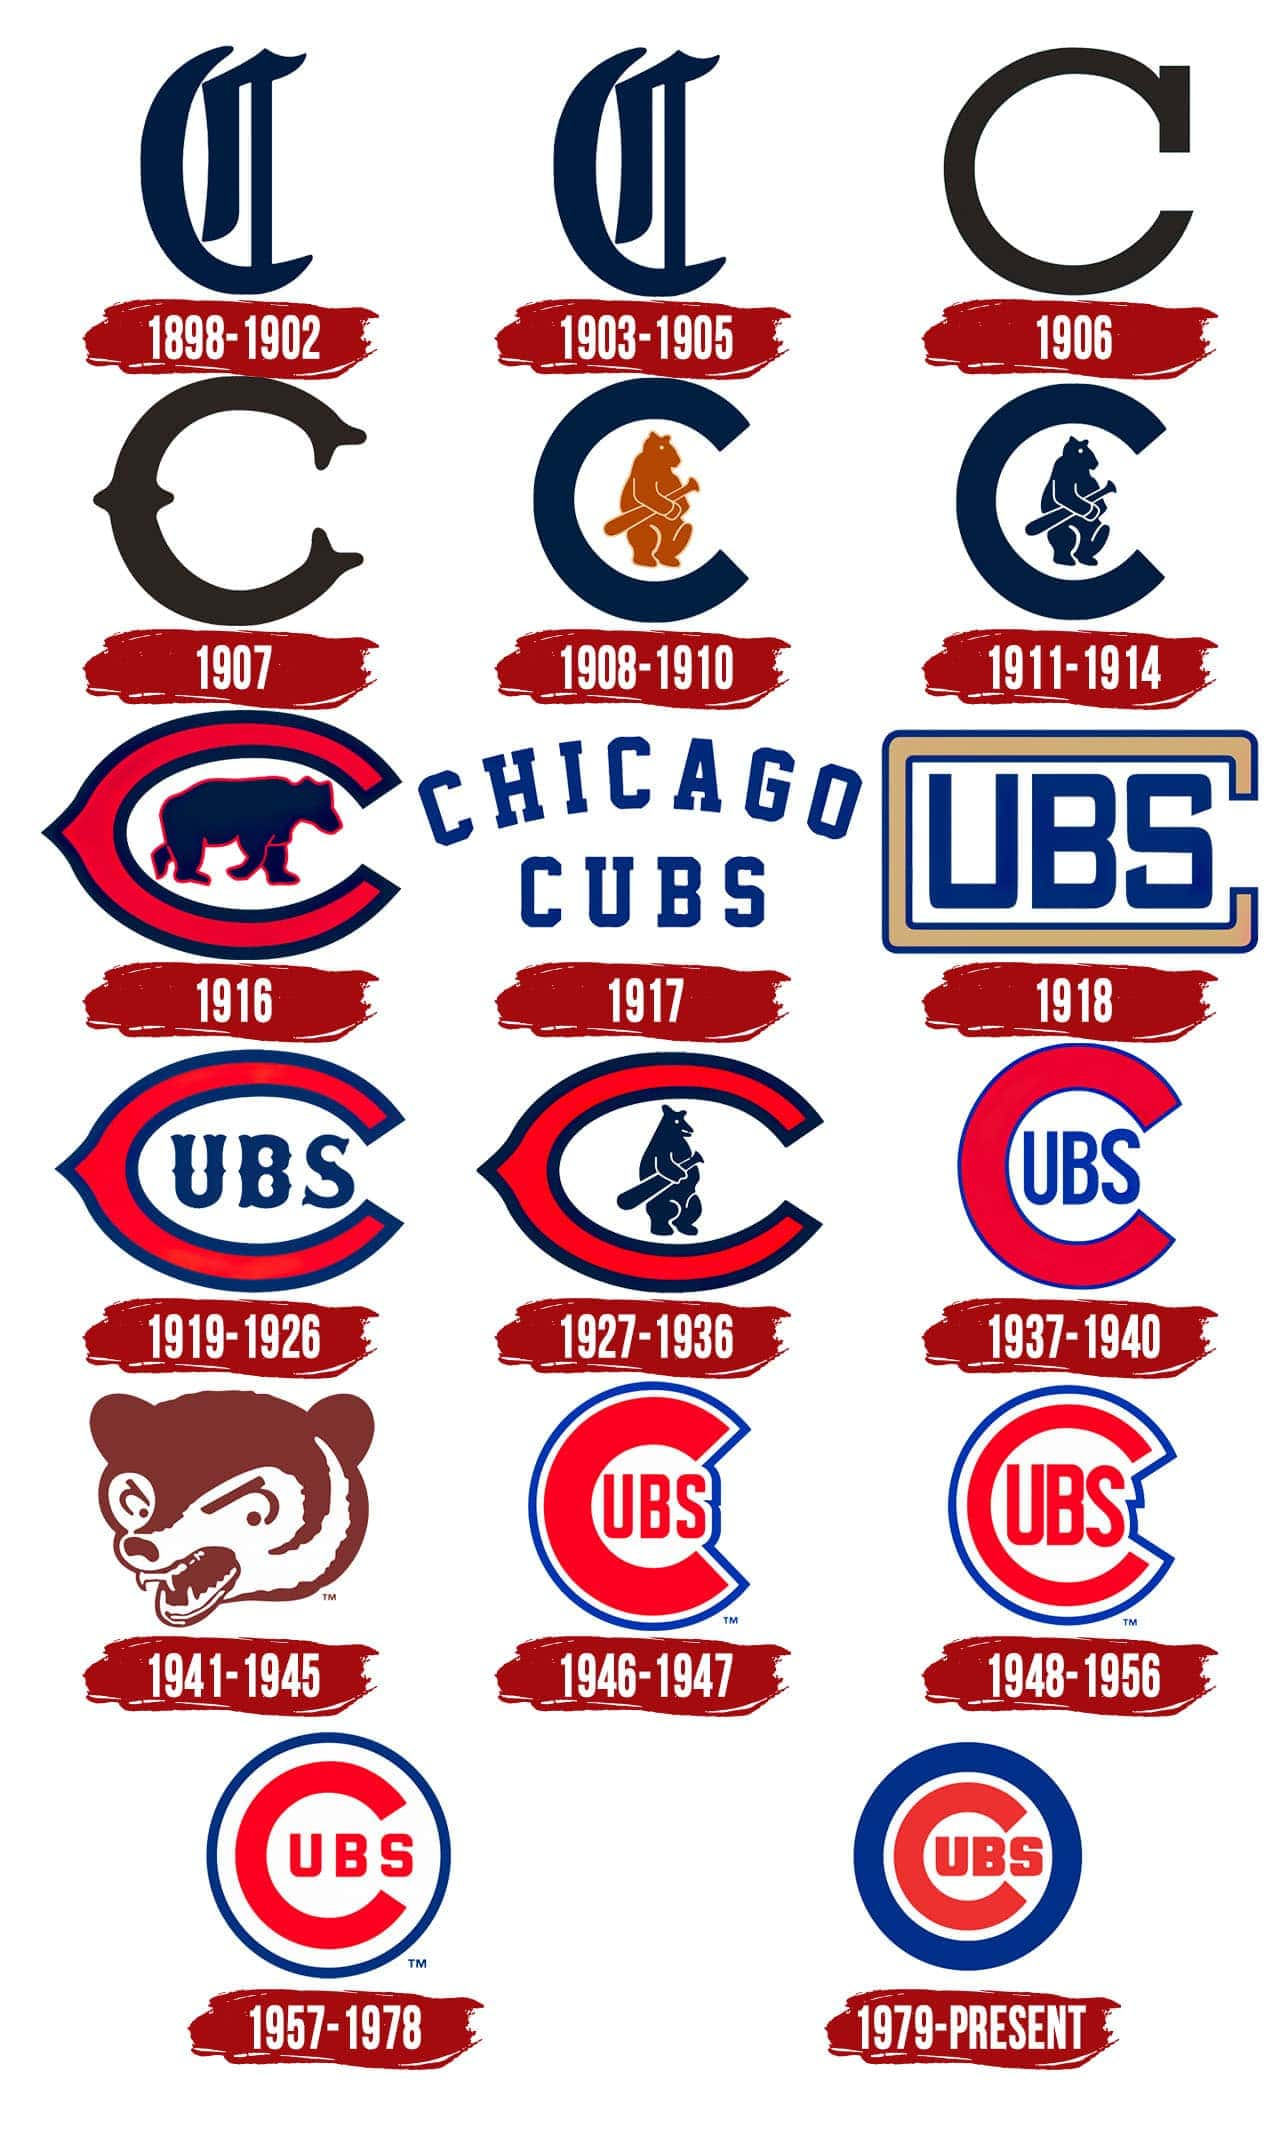 Chicago Cubs Logo History The Most Famous Brands And Company Logos In The World